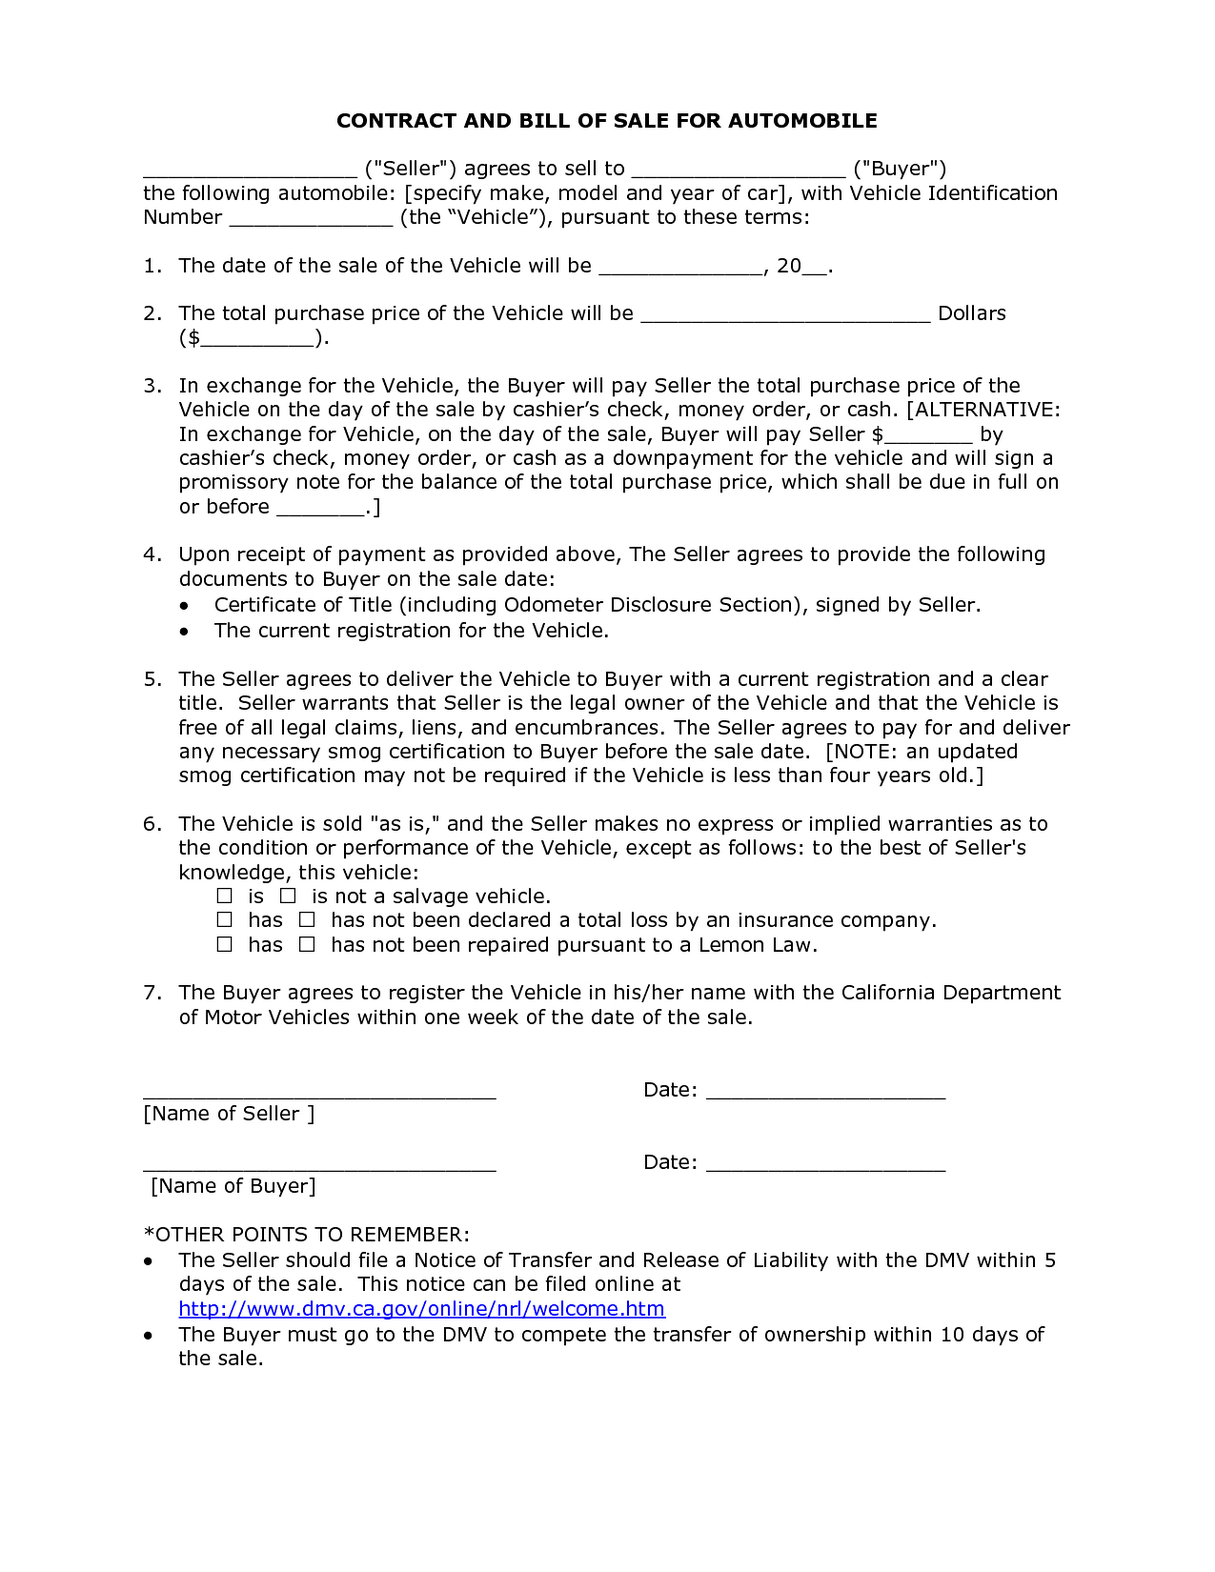 Proof Of Auto Insurance Letter Template - Proof Auto Insurance Template Free with Agreement Contract and